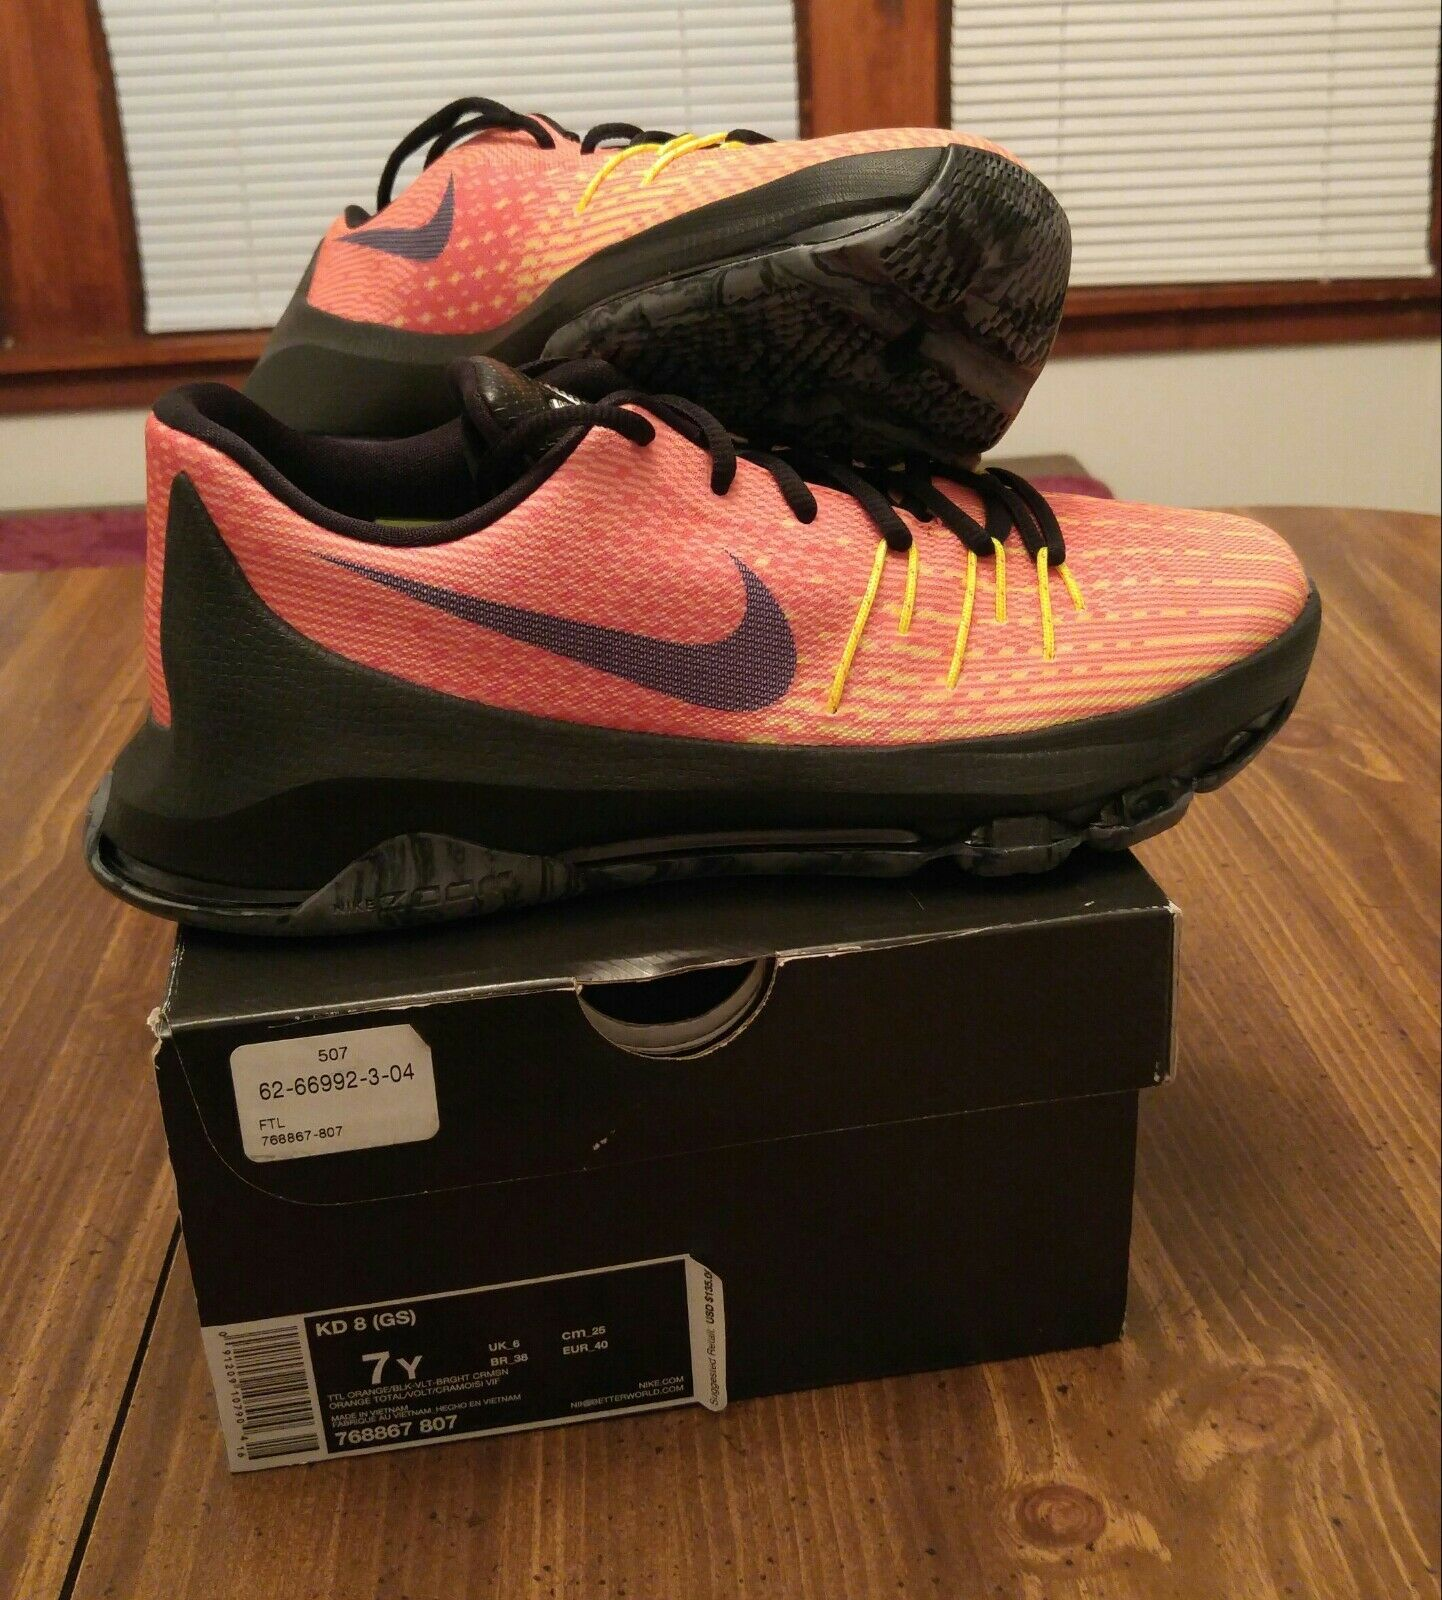 Wild casual shoes Nike KD 8 Price reduction Comfortable